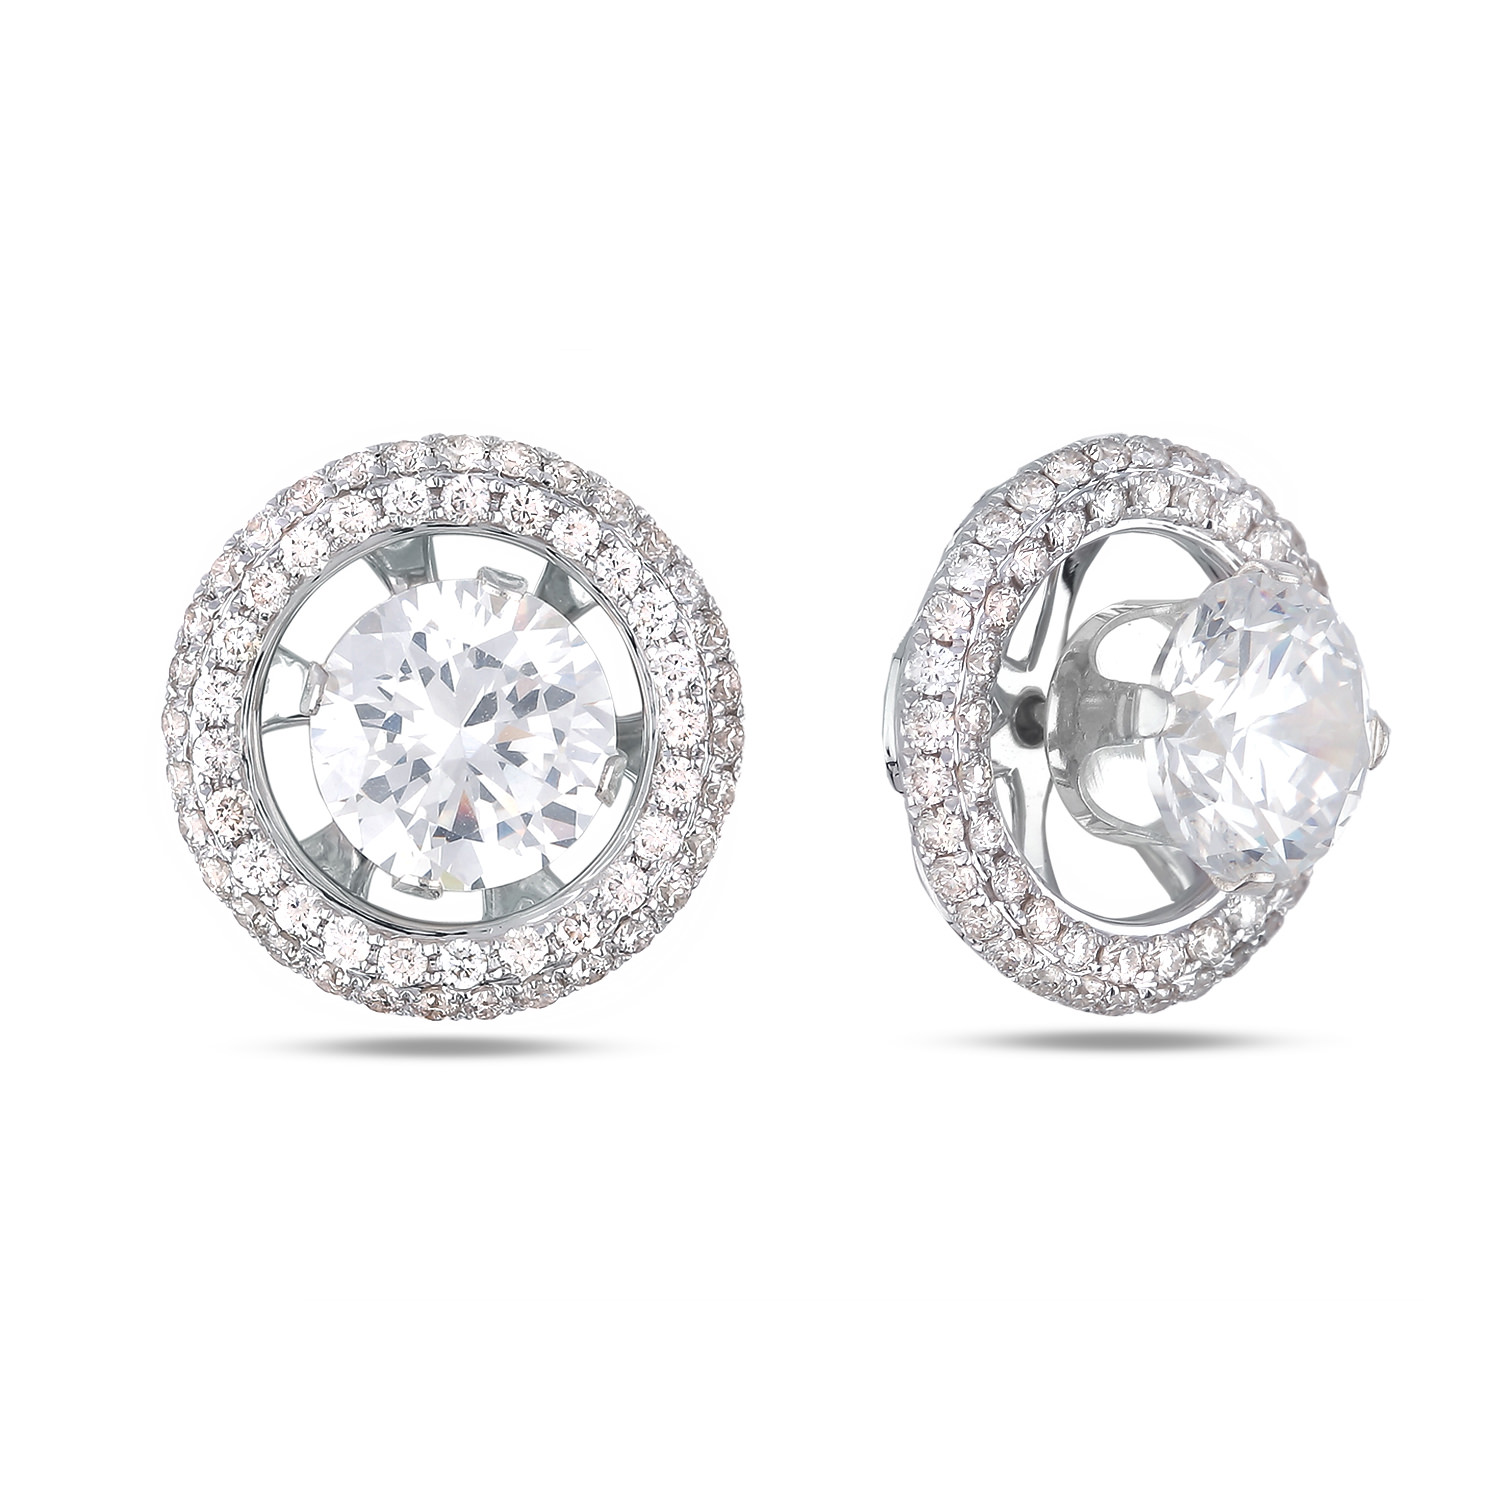 Diamond Stud Earrings SGE275 (Earrings)